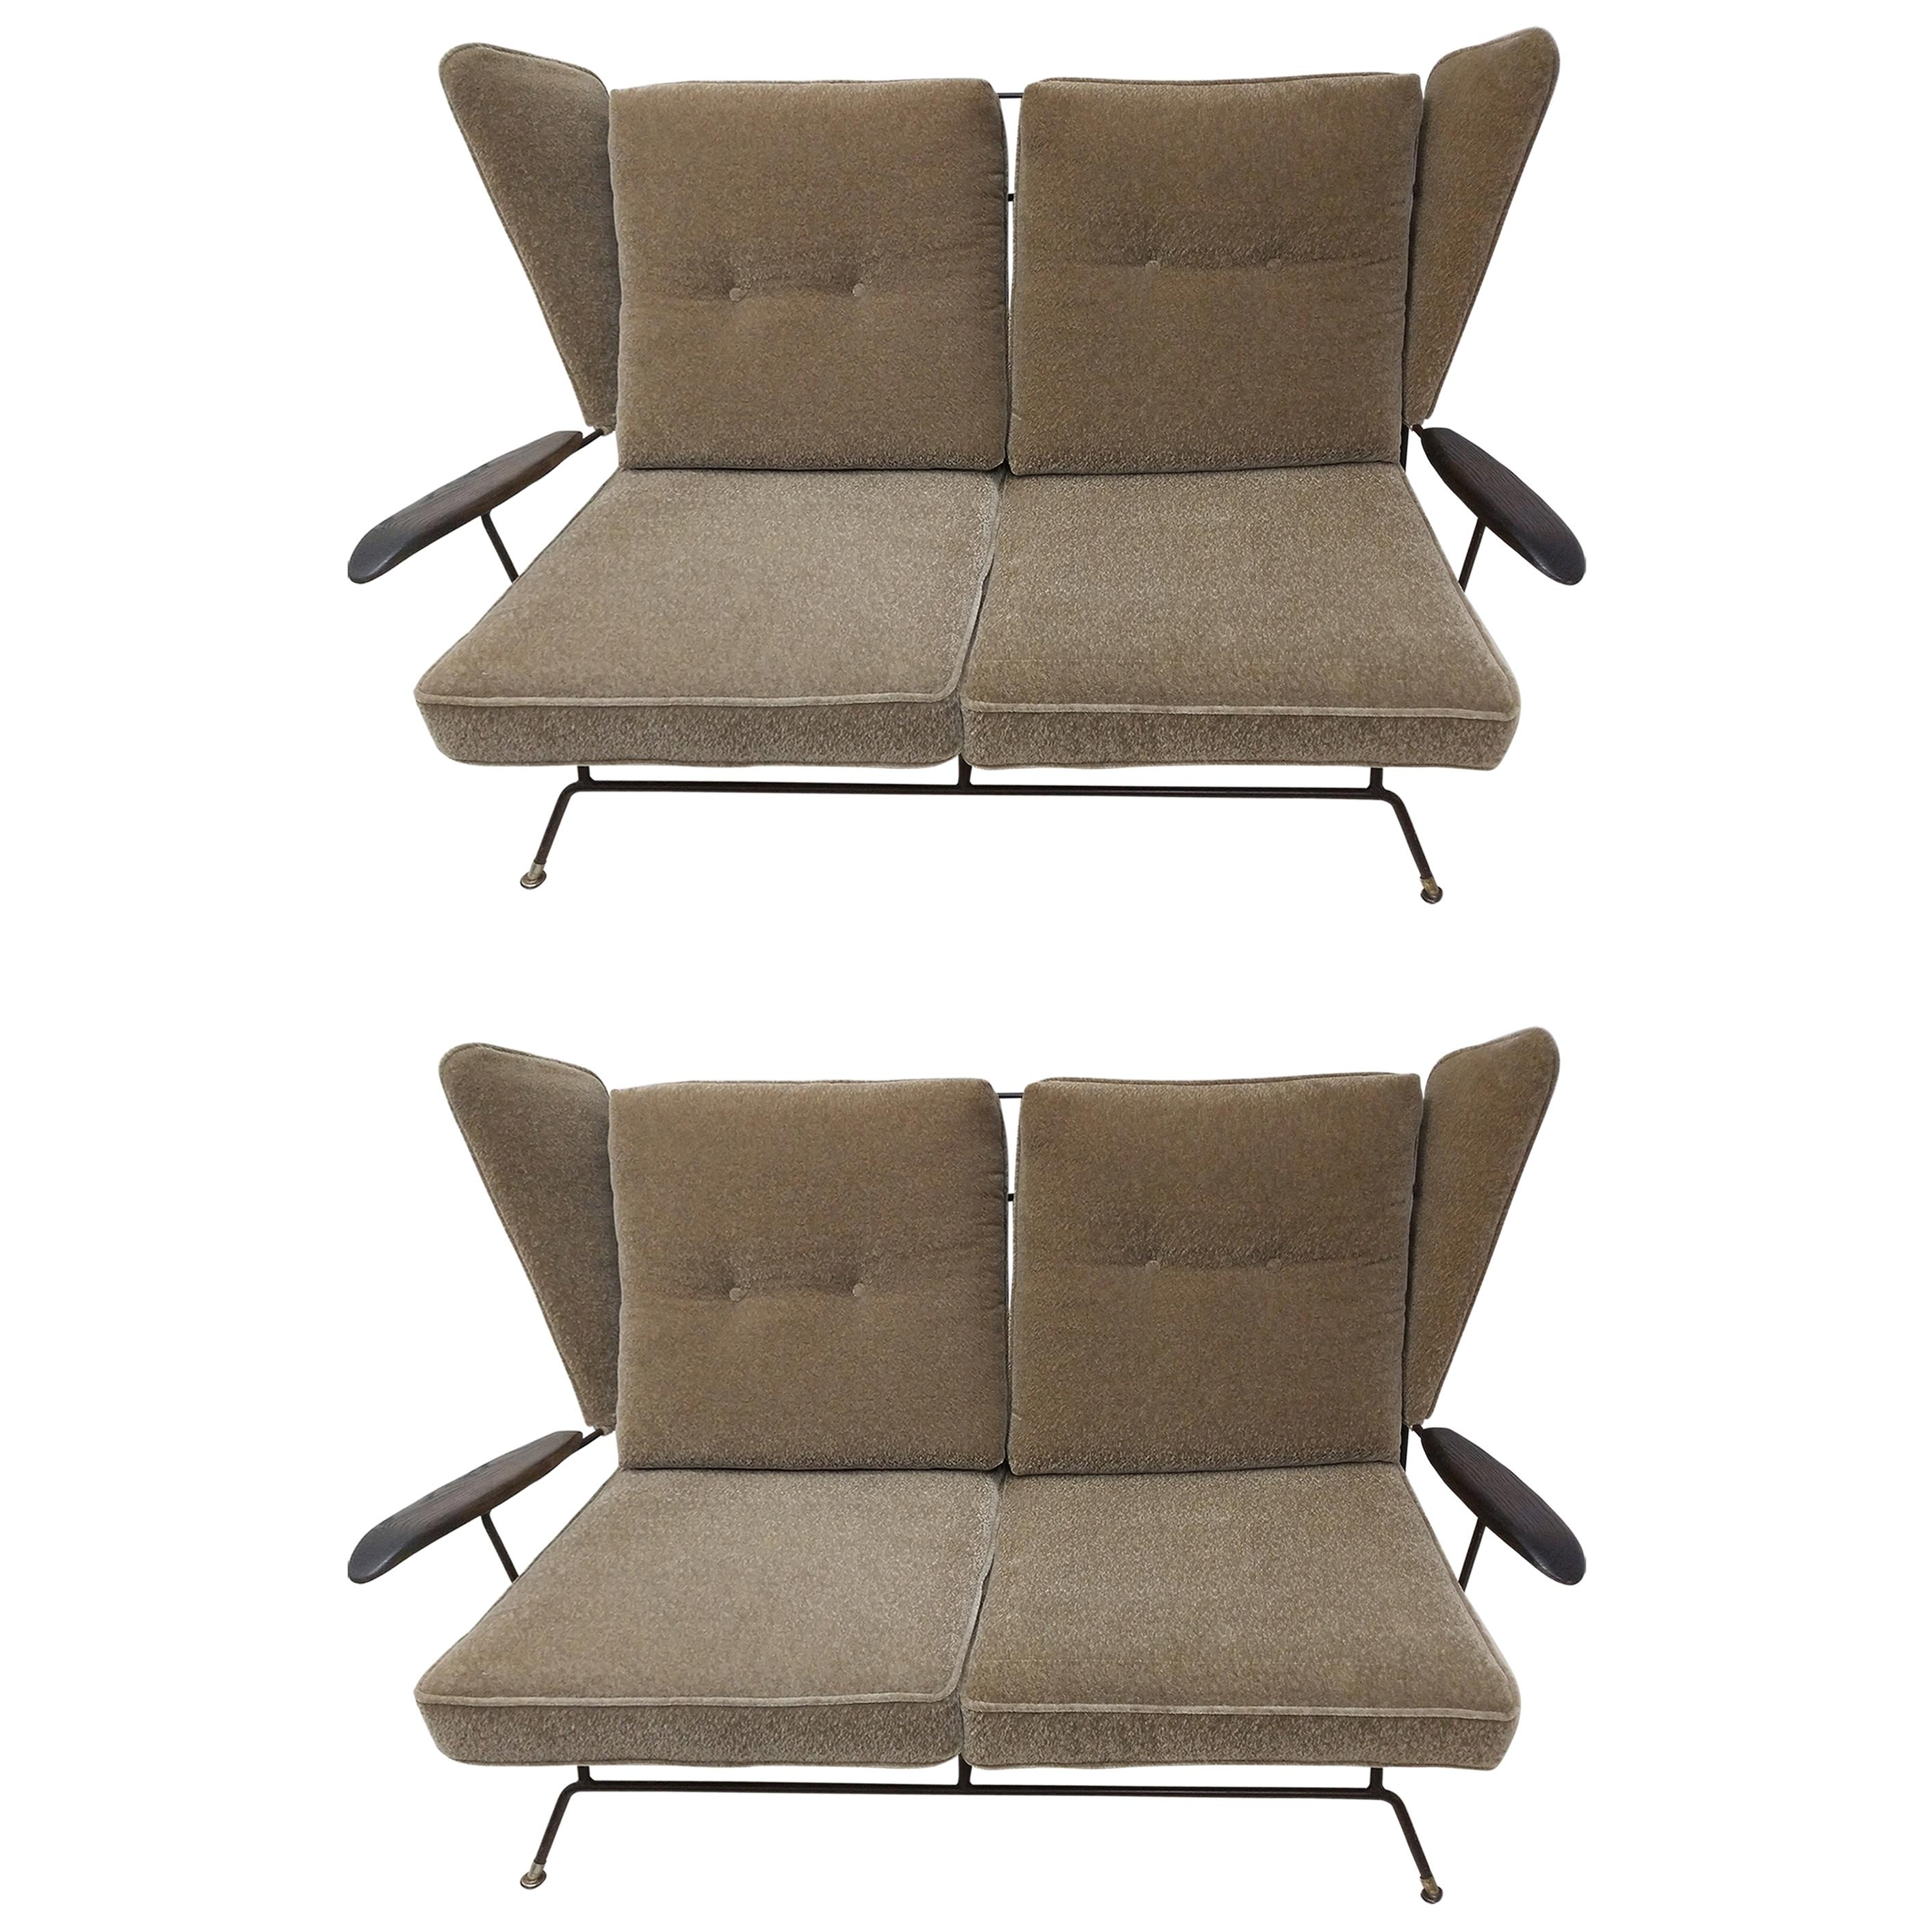 Pair of Mid-Century Modern Settees By Adrian Pearsall